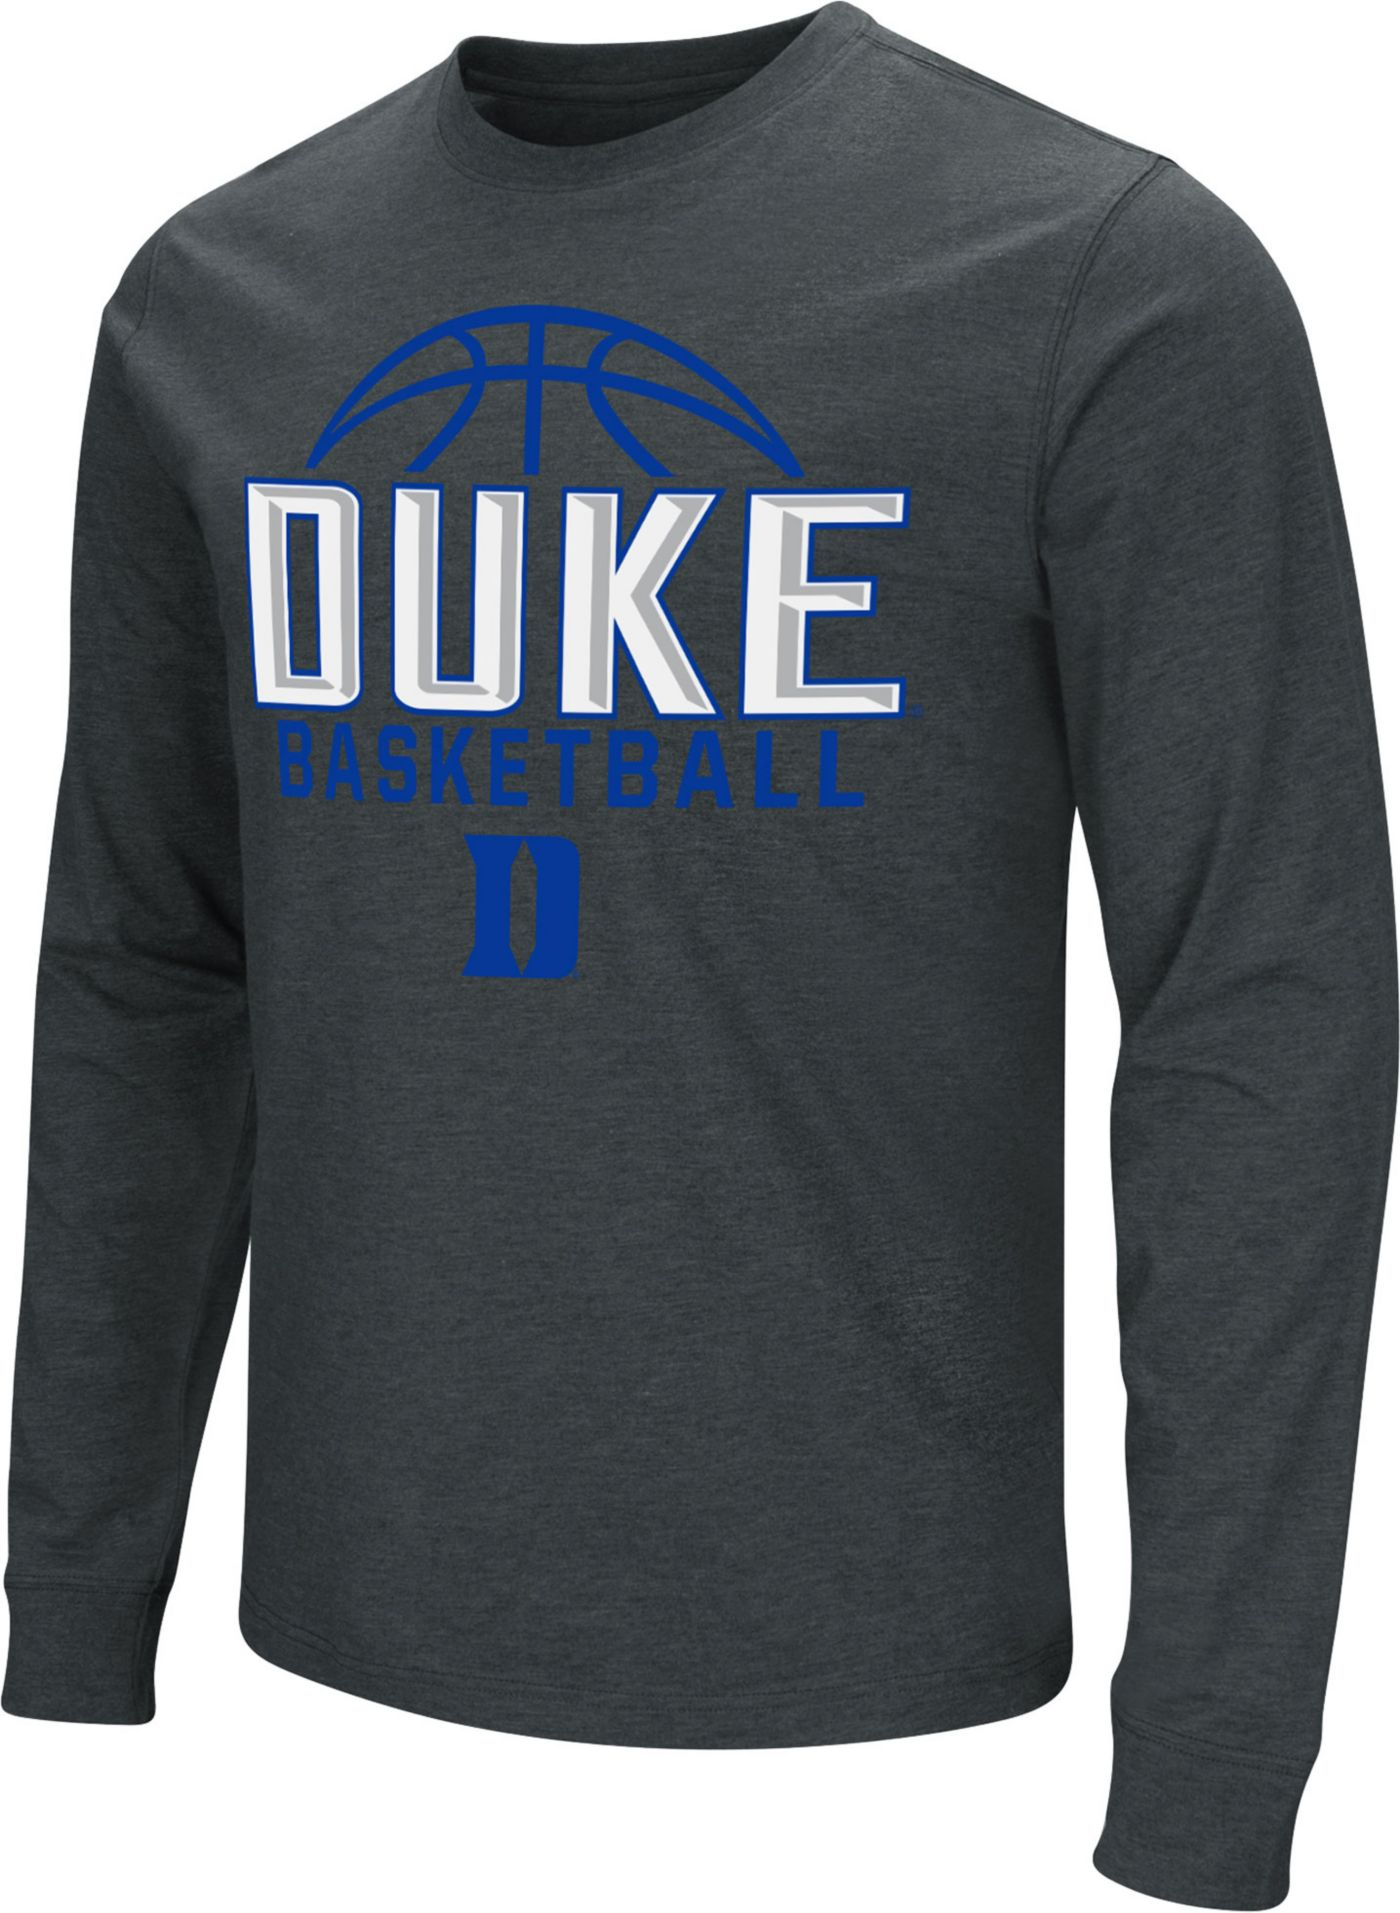 Colosseum Men's Duke Blue Devils Dual Blend Basketball Black T-Shirt